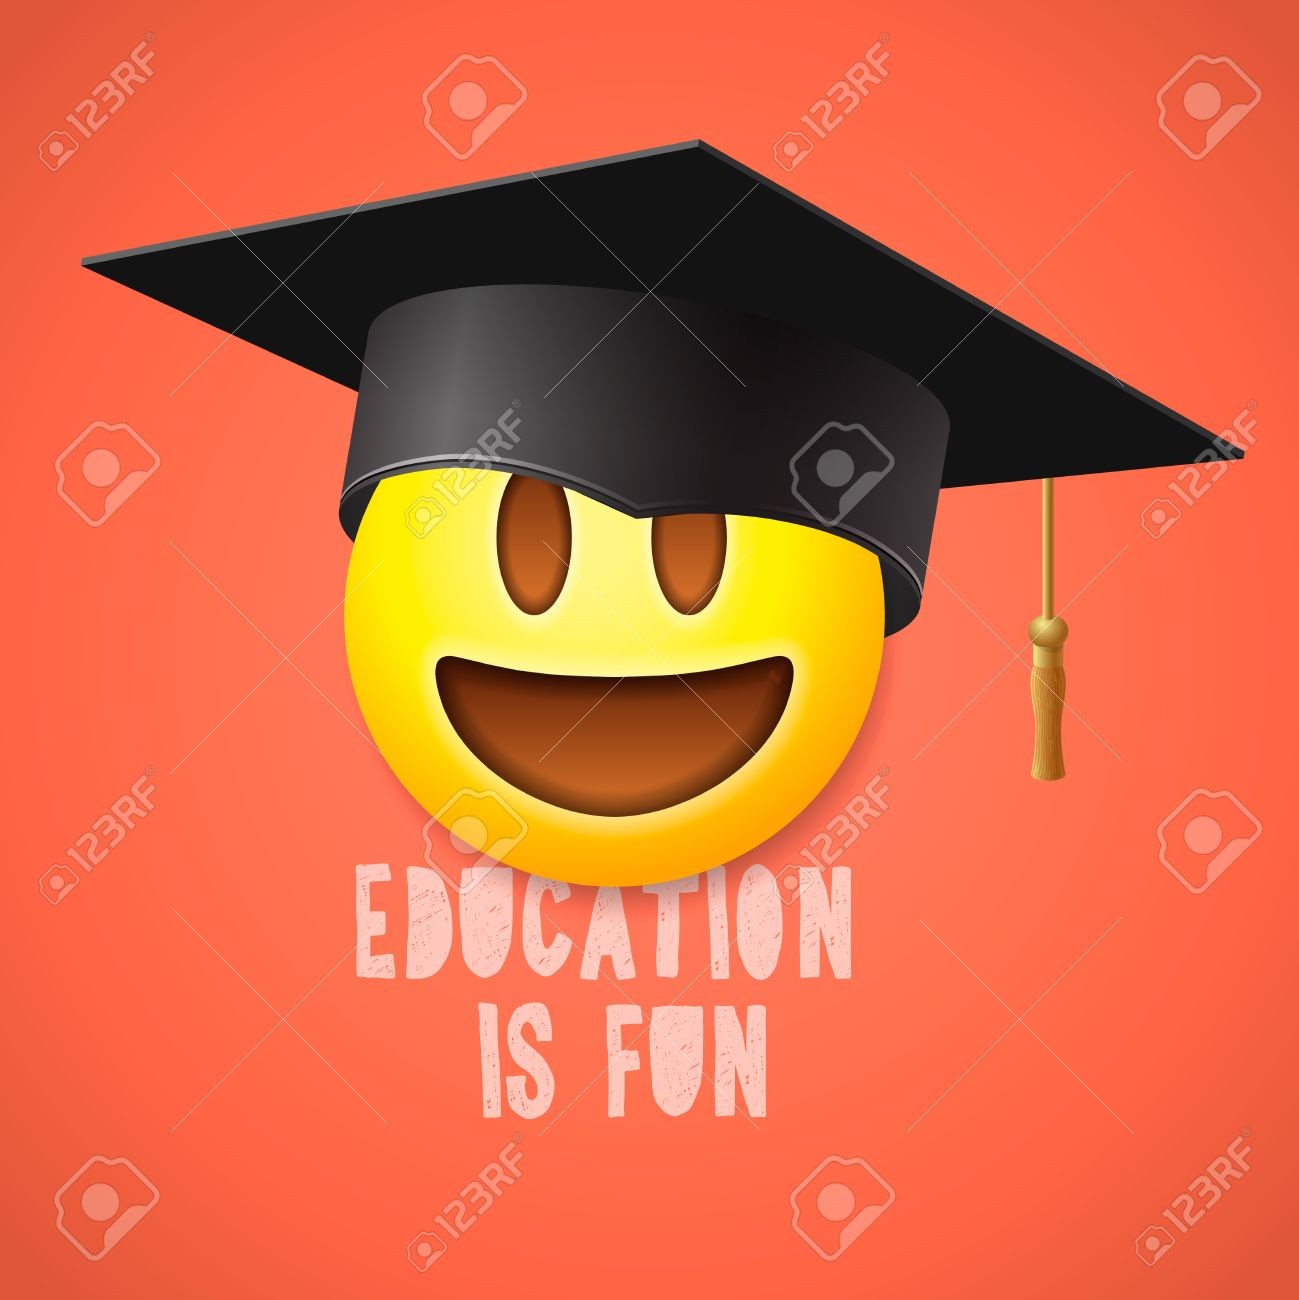 Education is fun emoticon laughing in the mortarboard emoji education is fun emoticon laughing in the mortarboard emoji smile symbol stock vector biocorpaavc Images